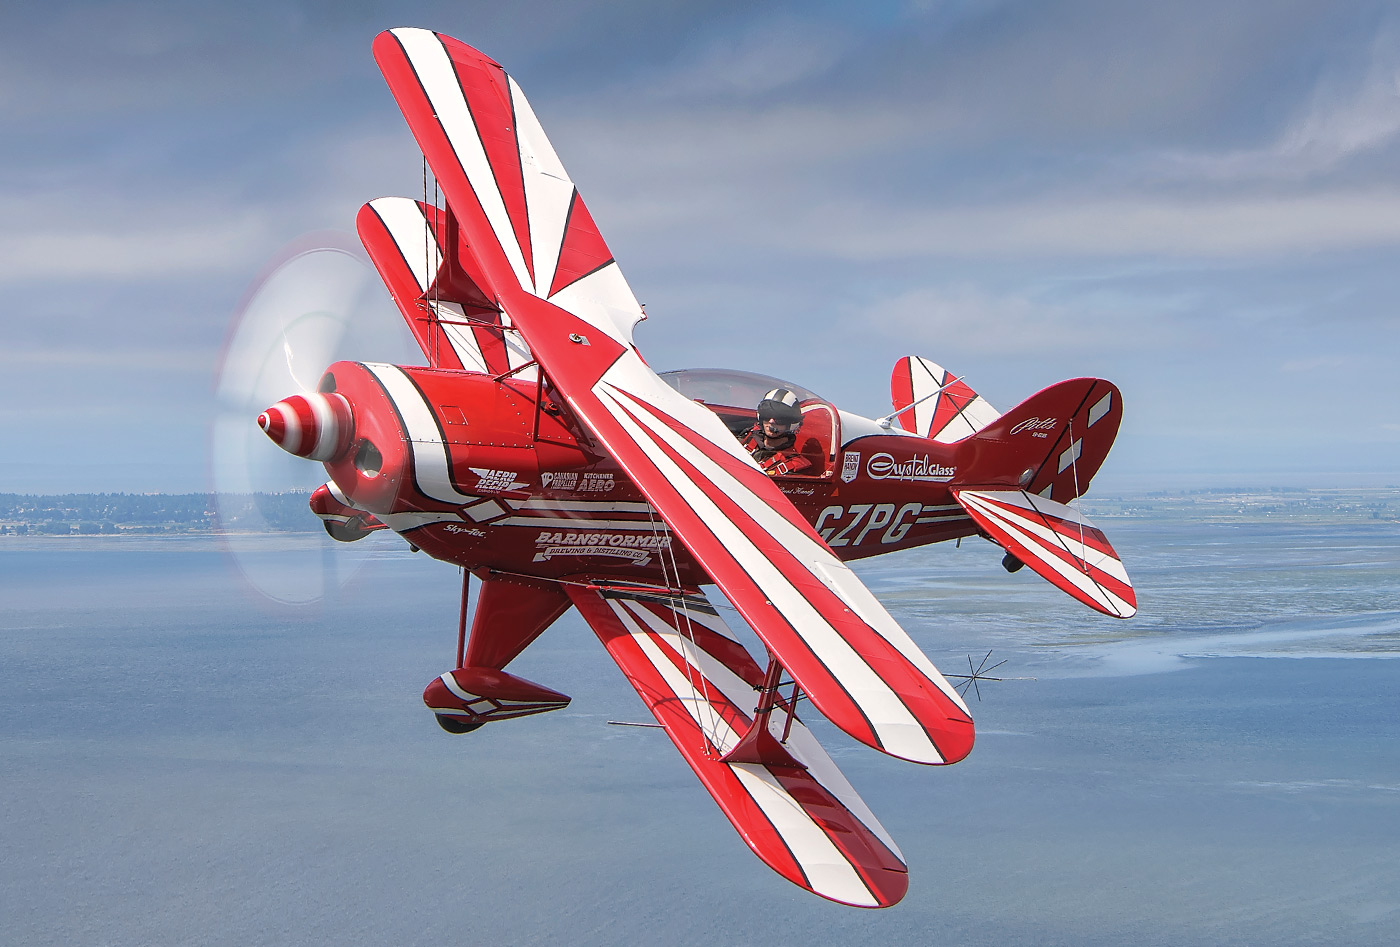 Handy flies his red and white Pitts Special S-2B